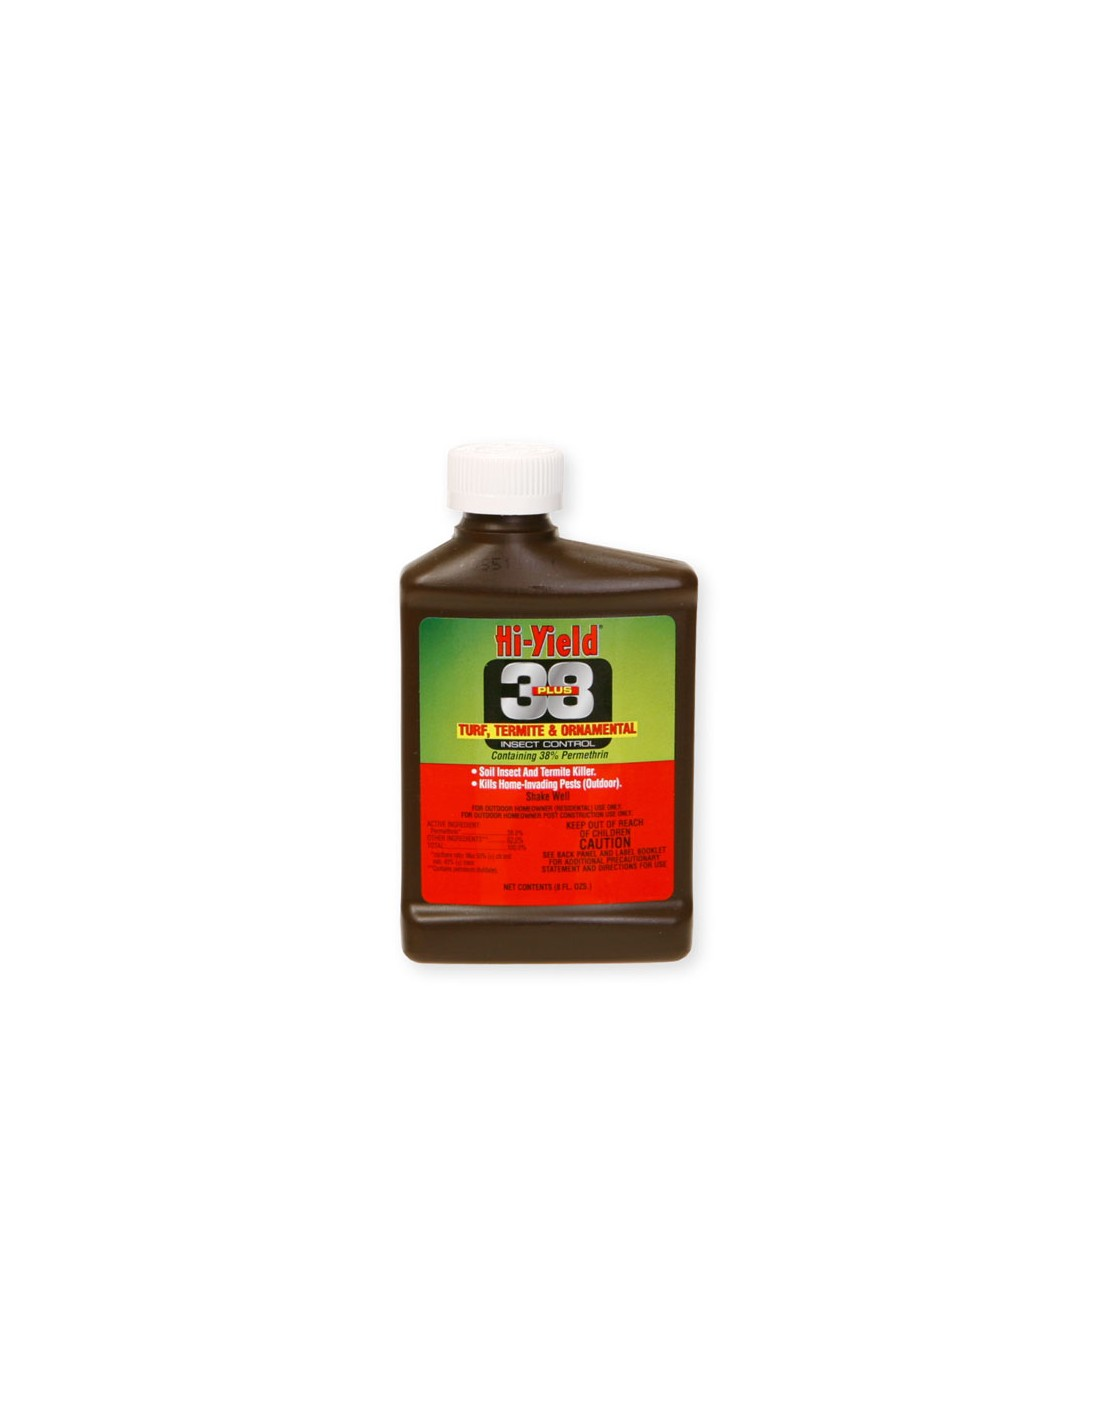 is this product safe to use on applee trees to control  beetles